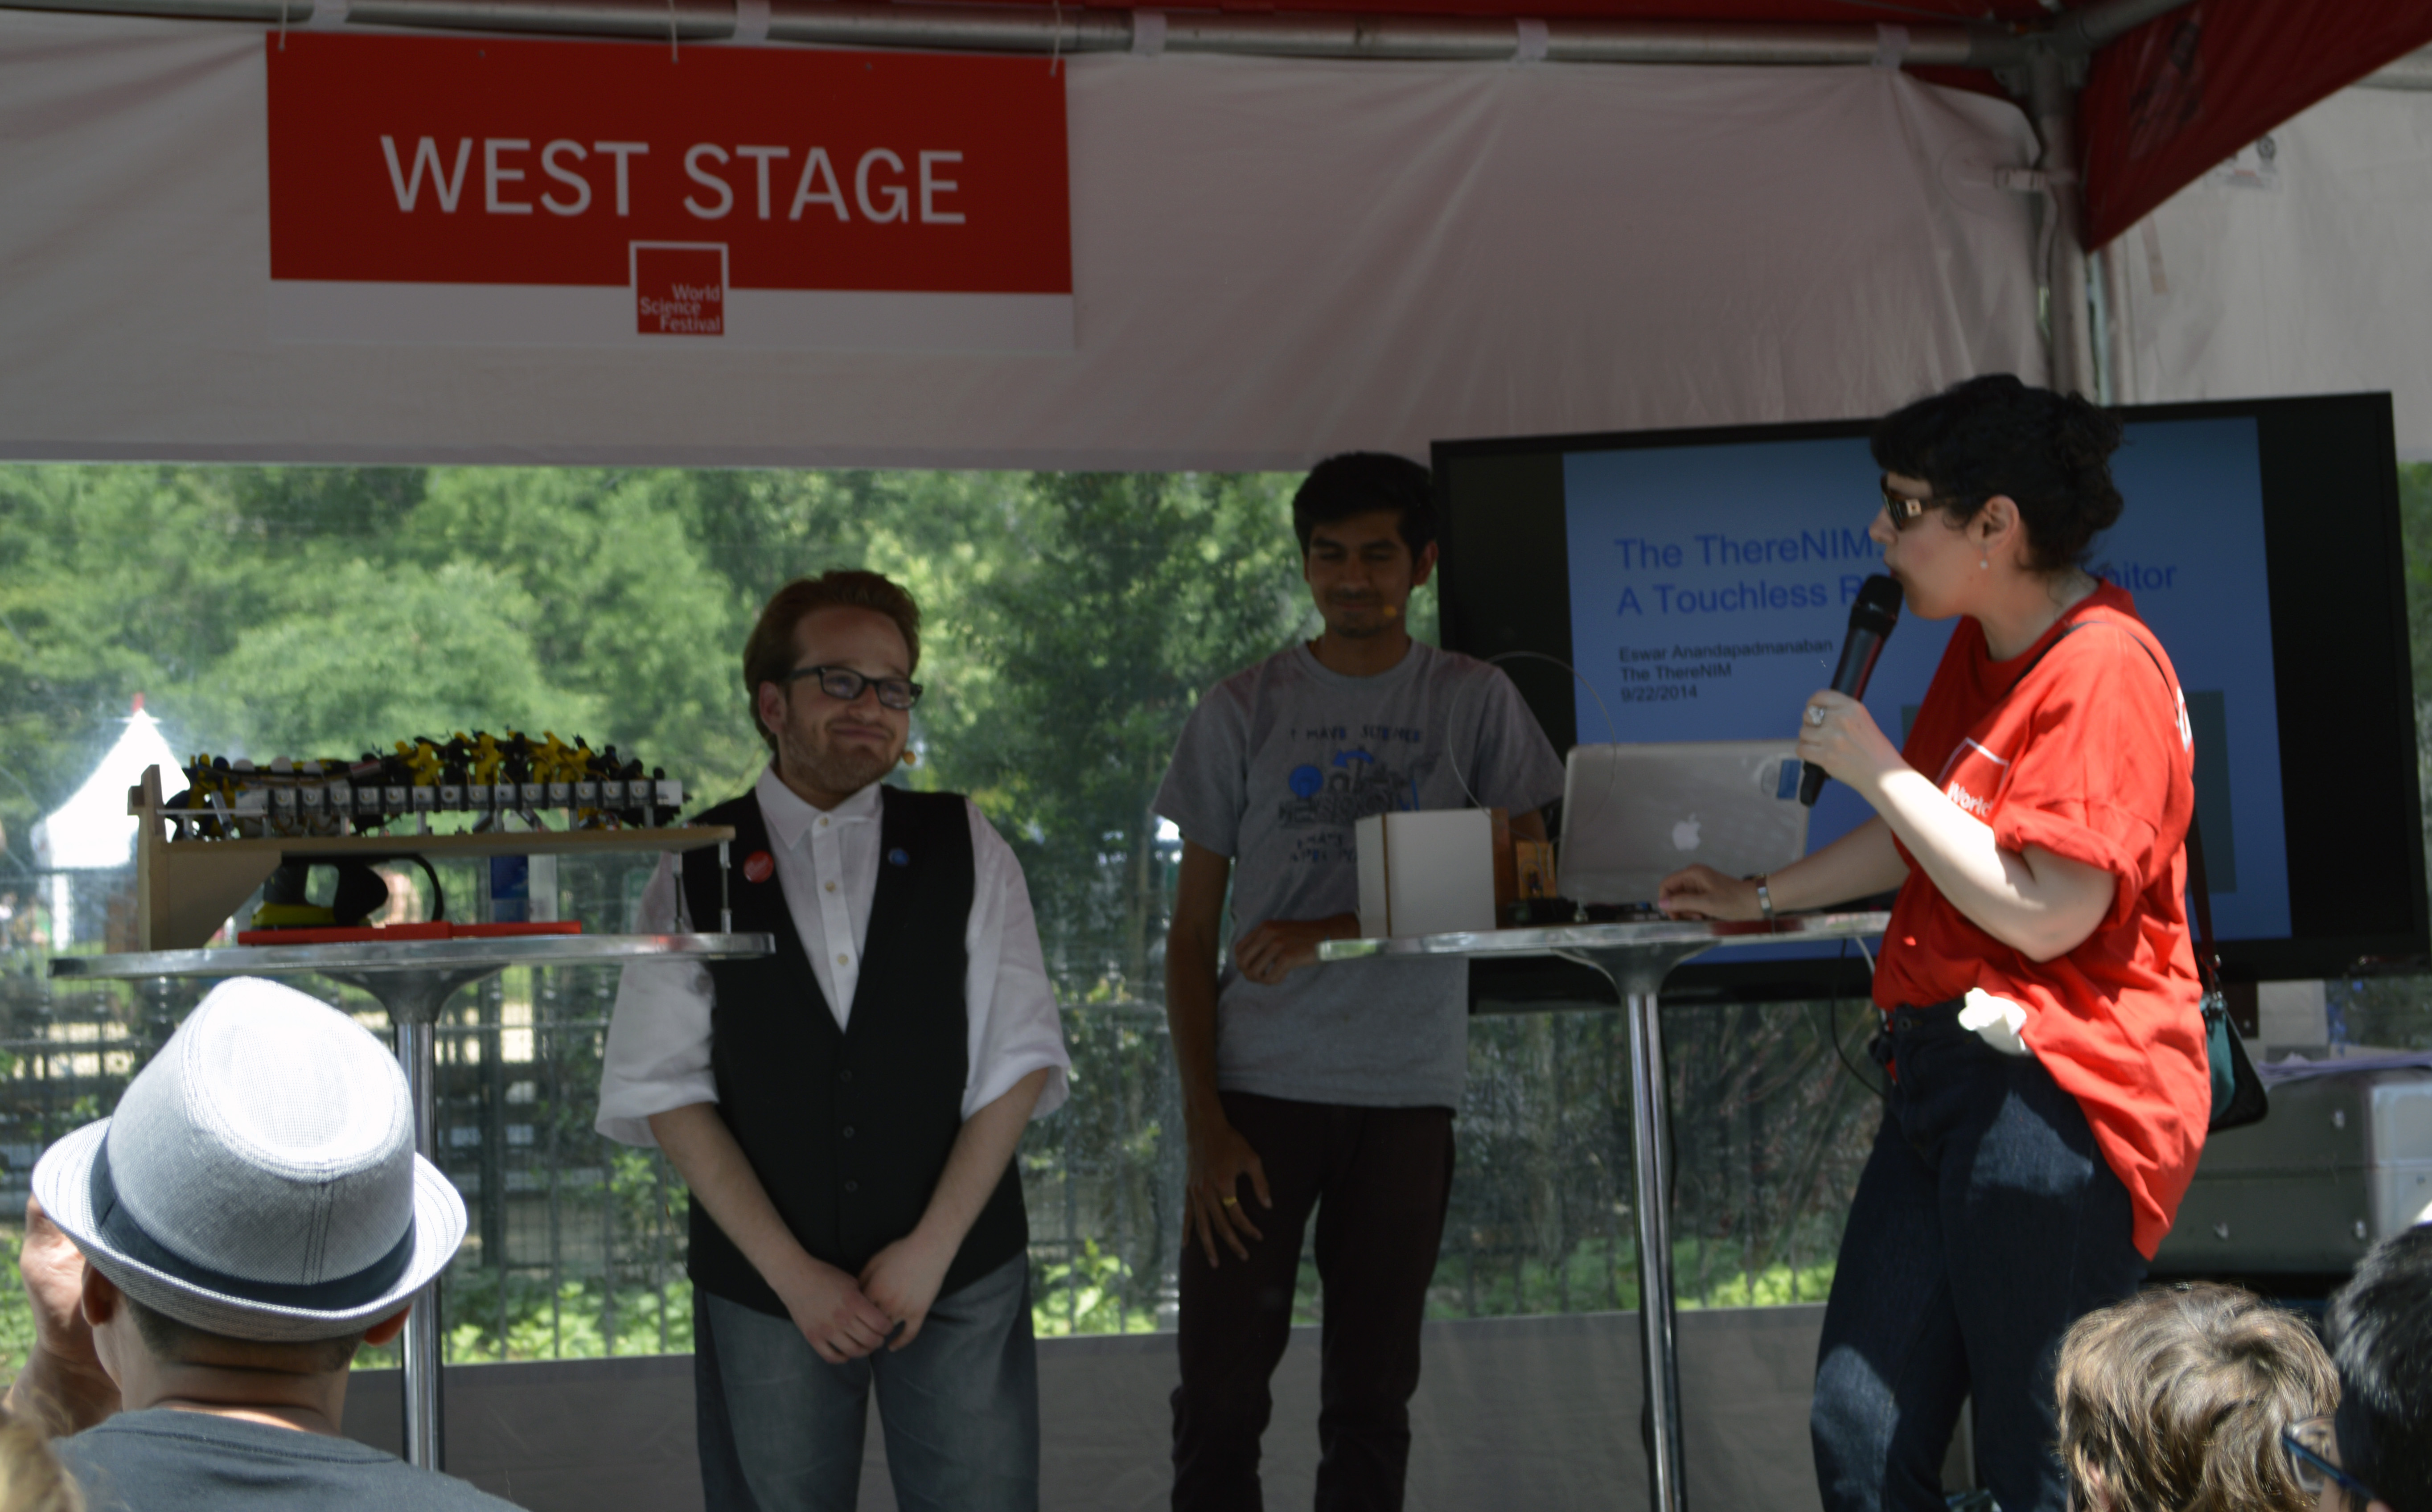 Harry and Eswar were also asked to participate in a Q&A about their research in front of a live audience.